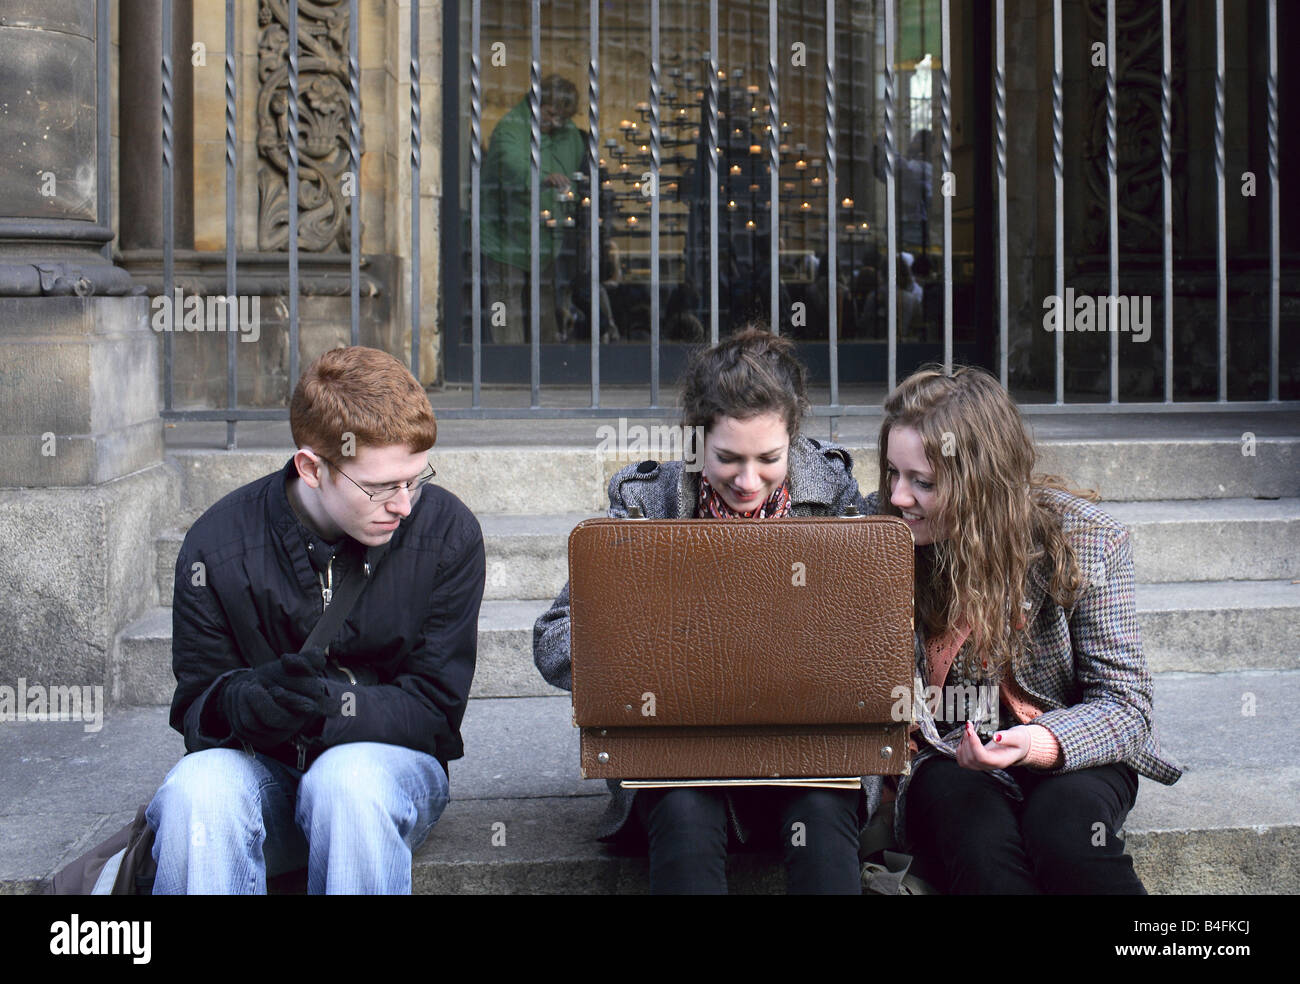 Teenagers looking into an open suitcase, Berlin, Germany - Stock Image